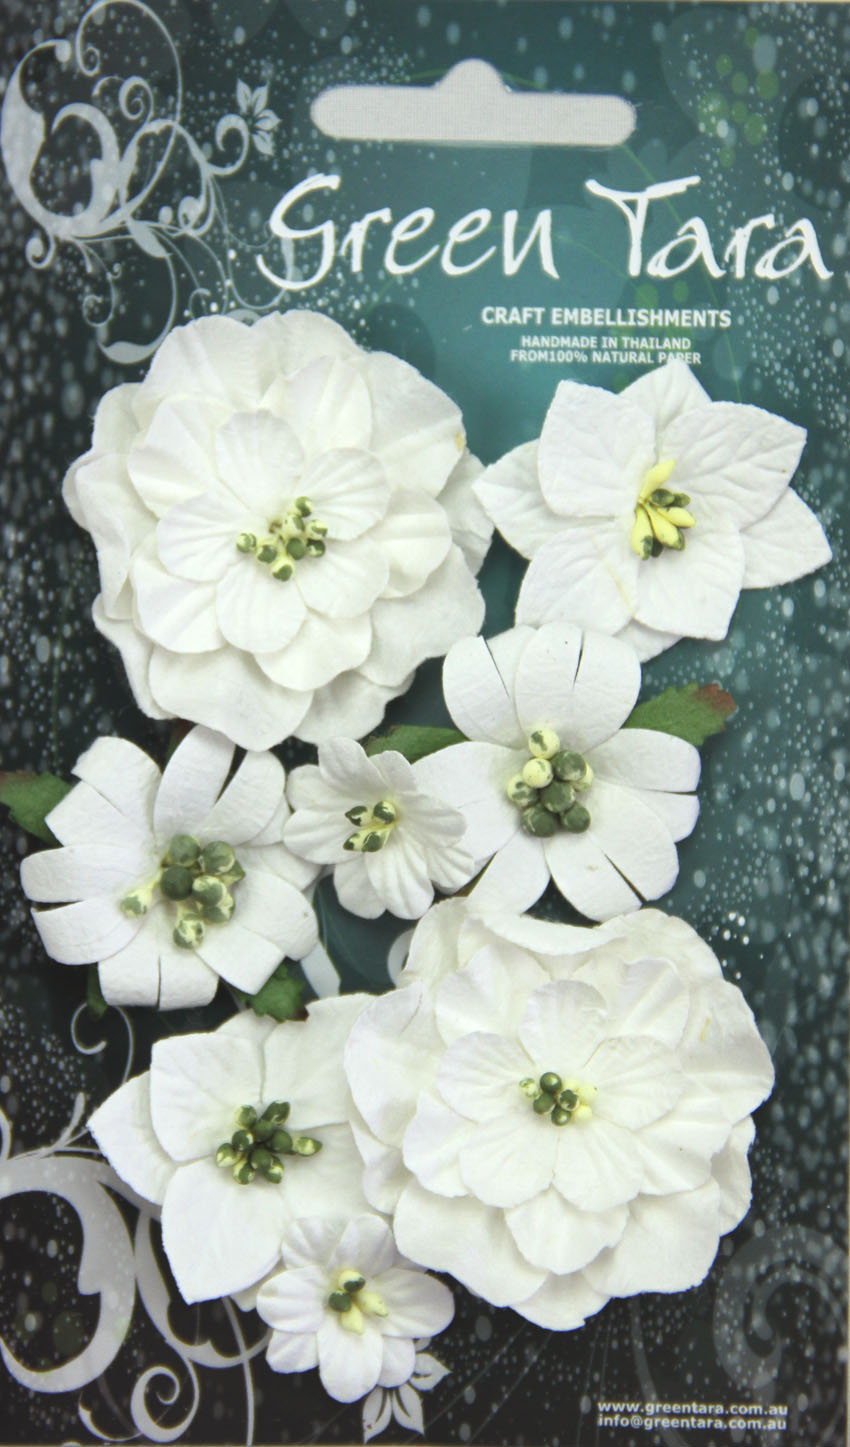 Fantasy Blooms - Pack of 8 Co-ordinated Flowers, WHITE